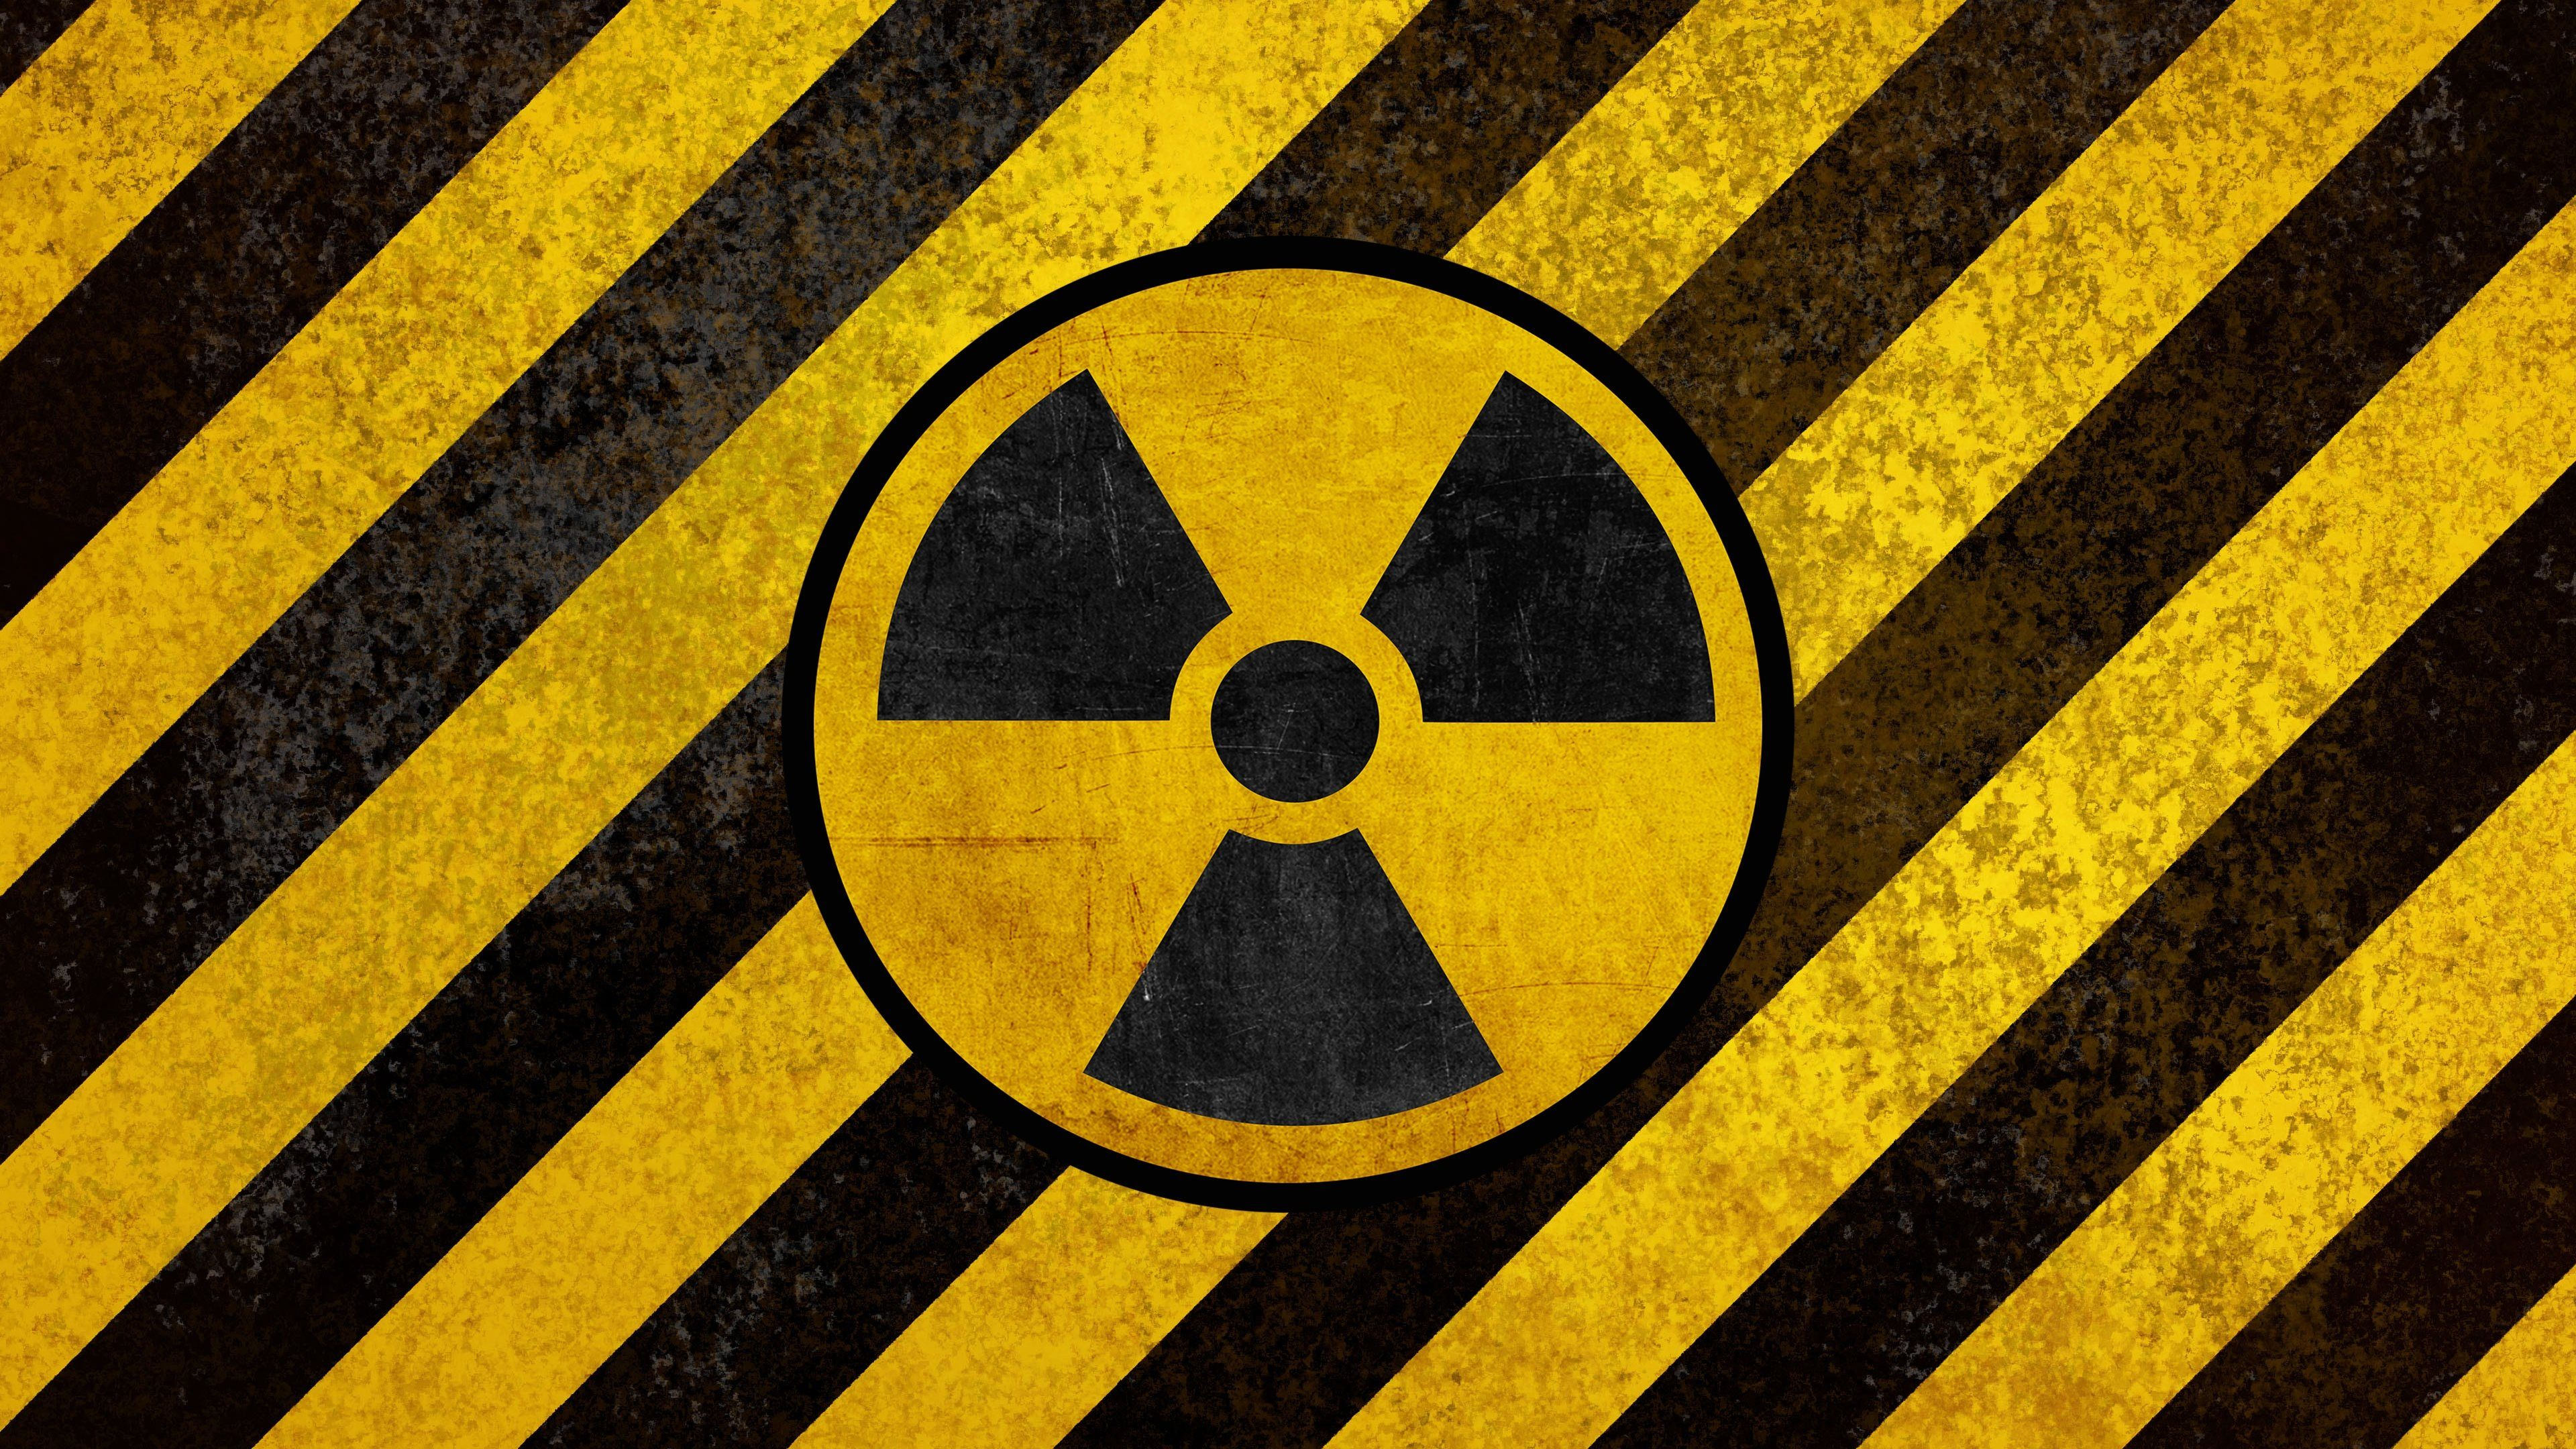 Warning Sign D And Cg Abstract Background Wallpapers On With